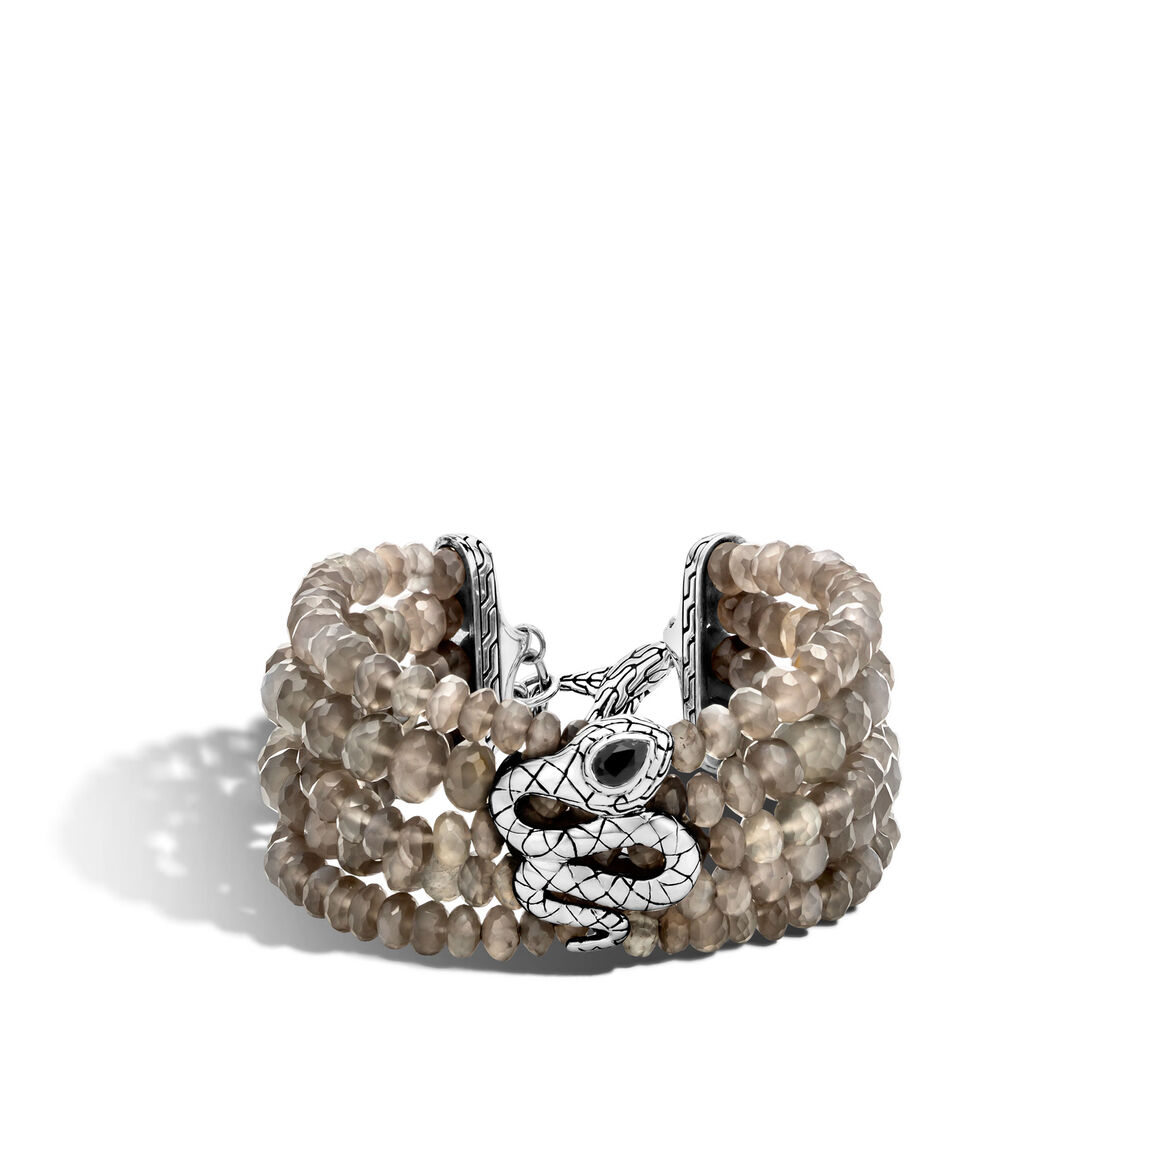 Legends Cobra Multi Row Bead Bracelet in Silver with Gems